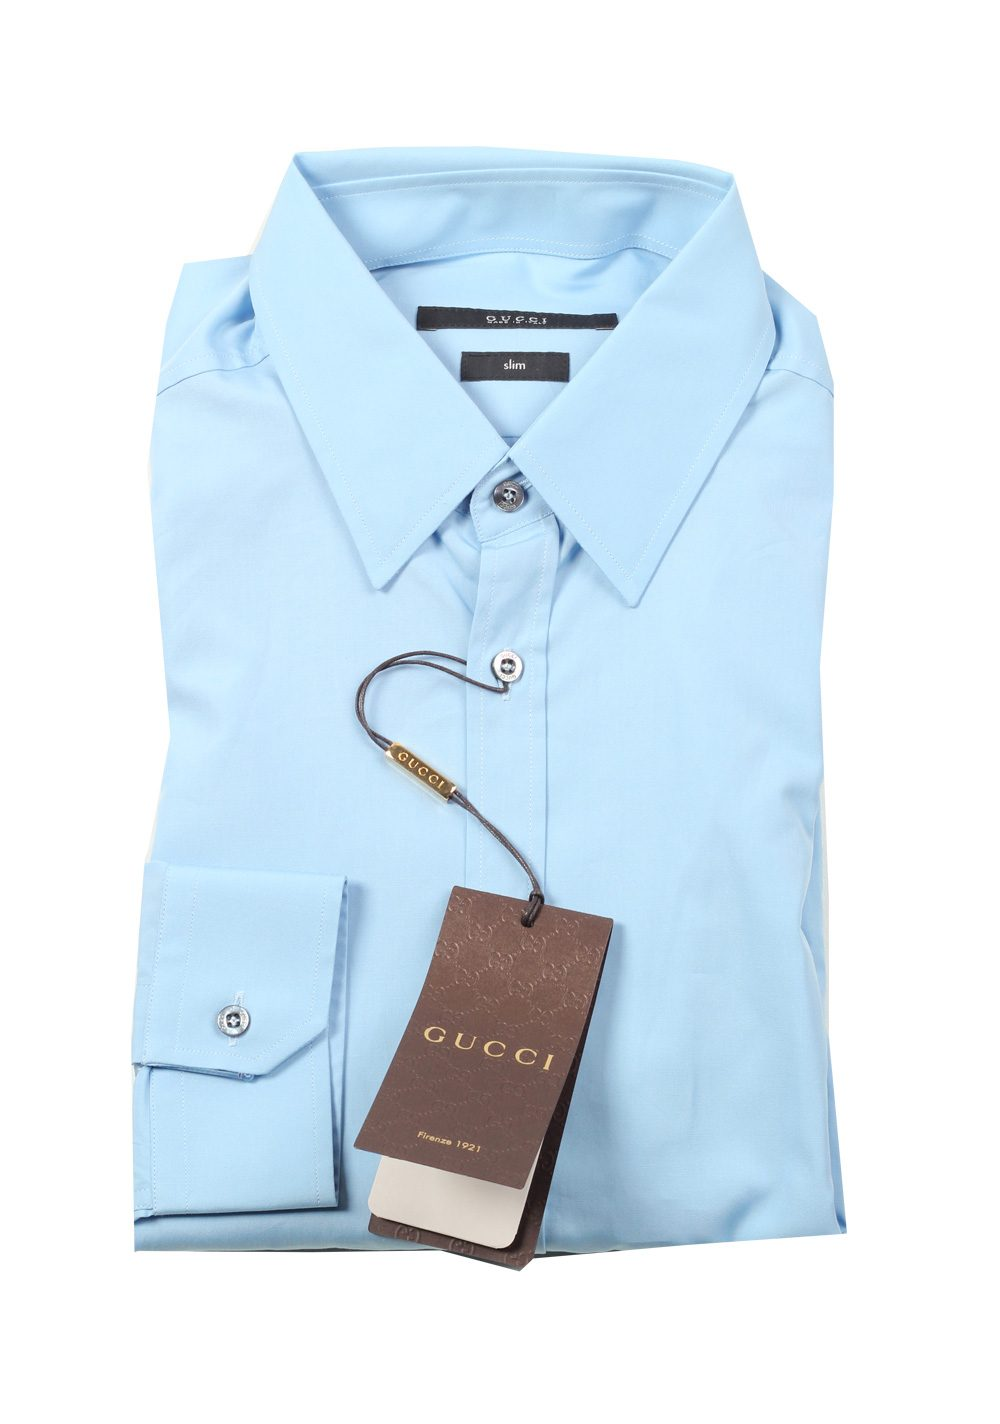 Gucci solid blue dress shirt size 39 15 5 u s slim for Size 15 dress shirt